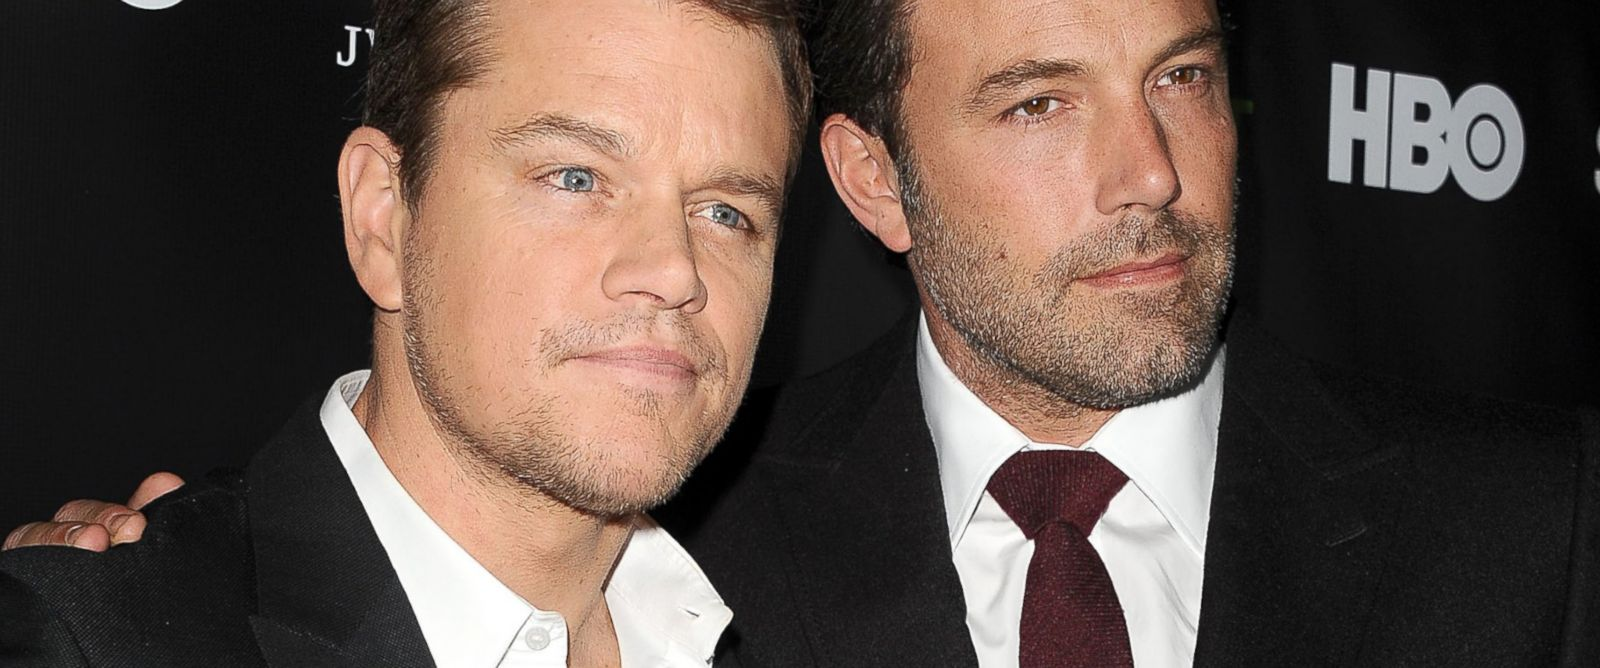 """PHOTO: Matt Damon and Ben Affleck attend a """"Project Greenlight"""" event on Nov. 7, 2014 in Hollywood, Calif."""